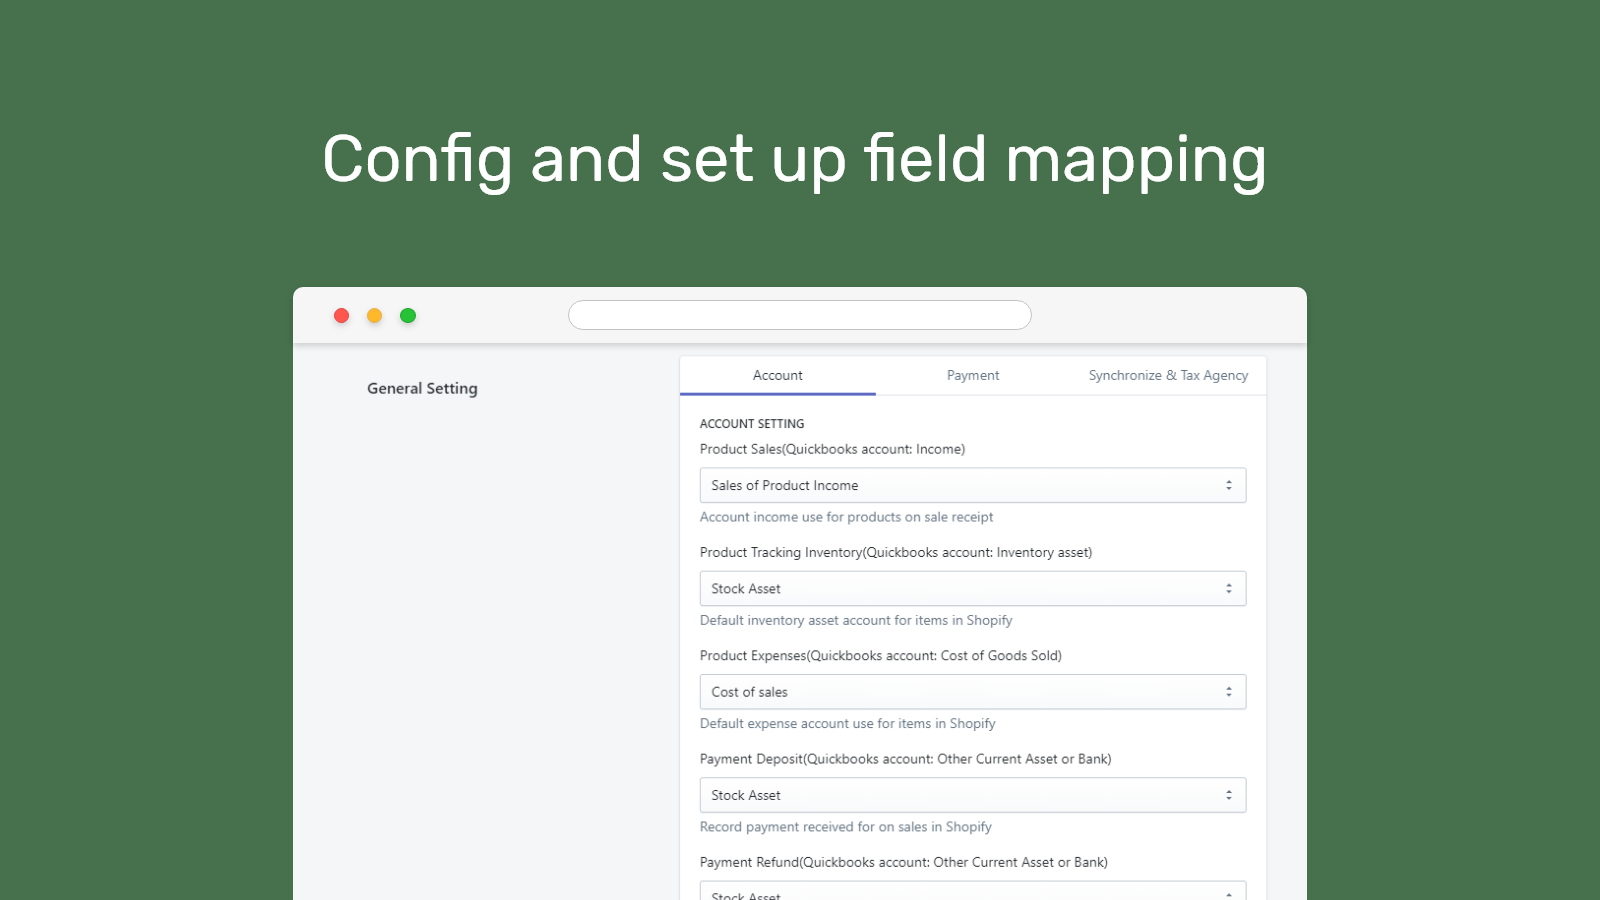 Account mapping